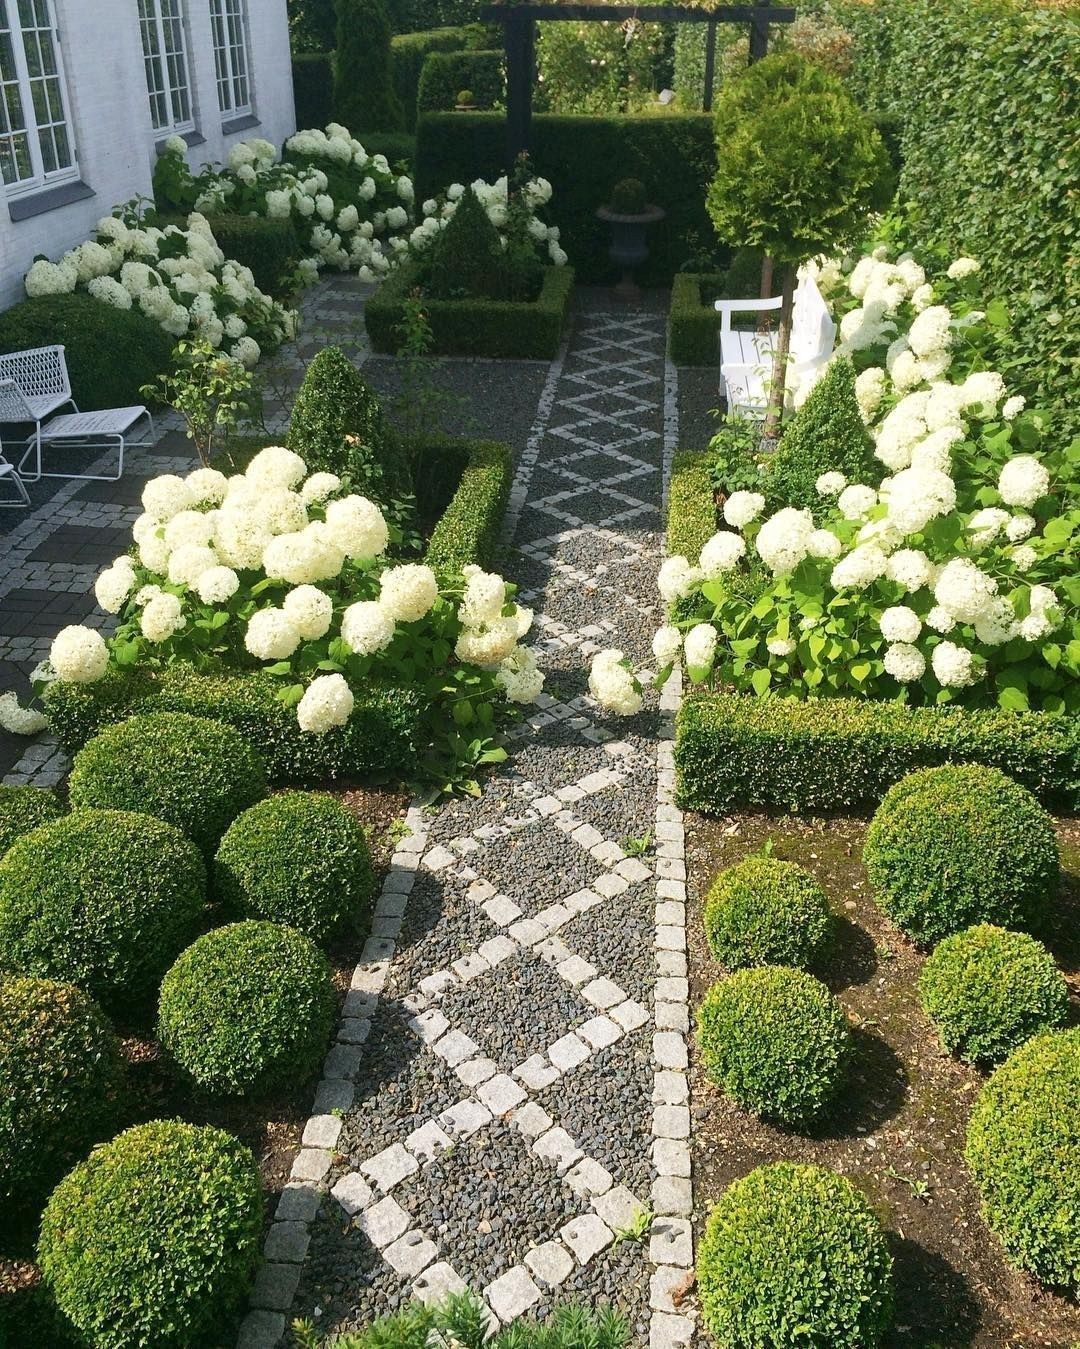 One of the most usual designs being adapted all over the world is the English ga  With these ideas quick tips and examples plan your personal dream garden  whether you wa...